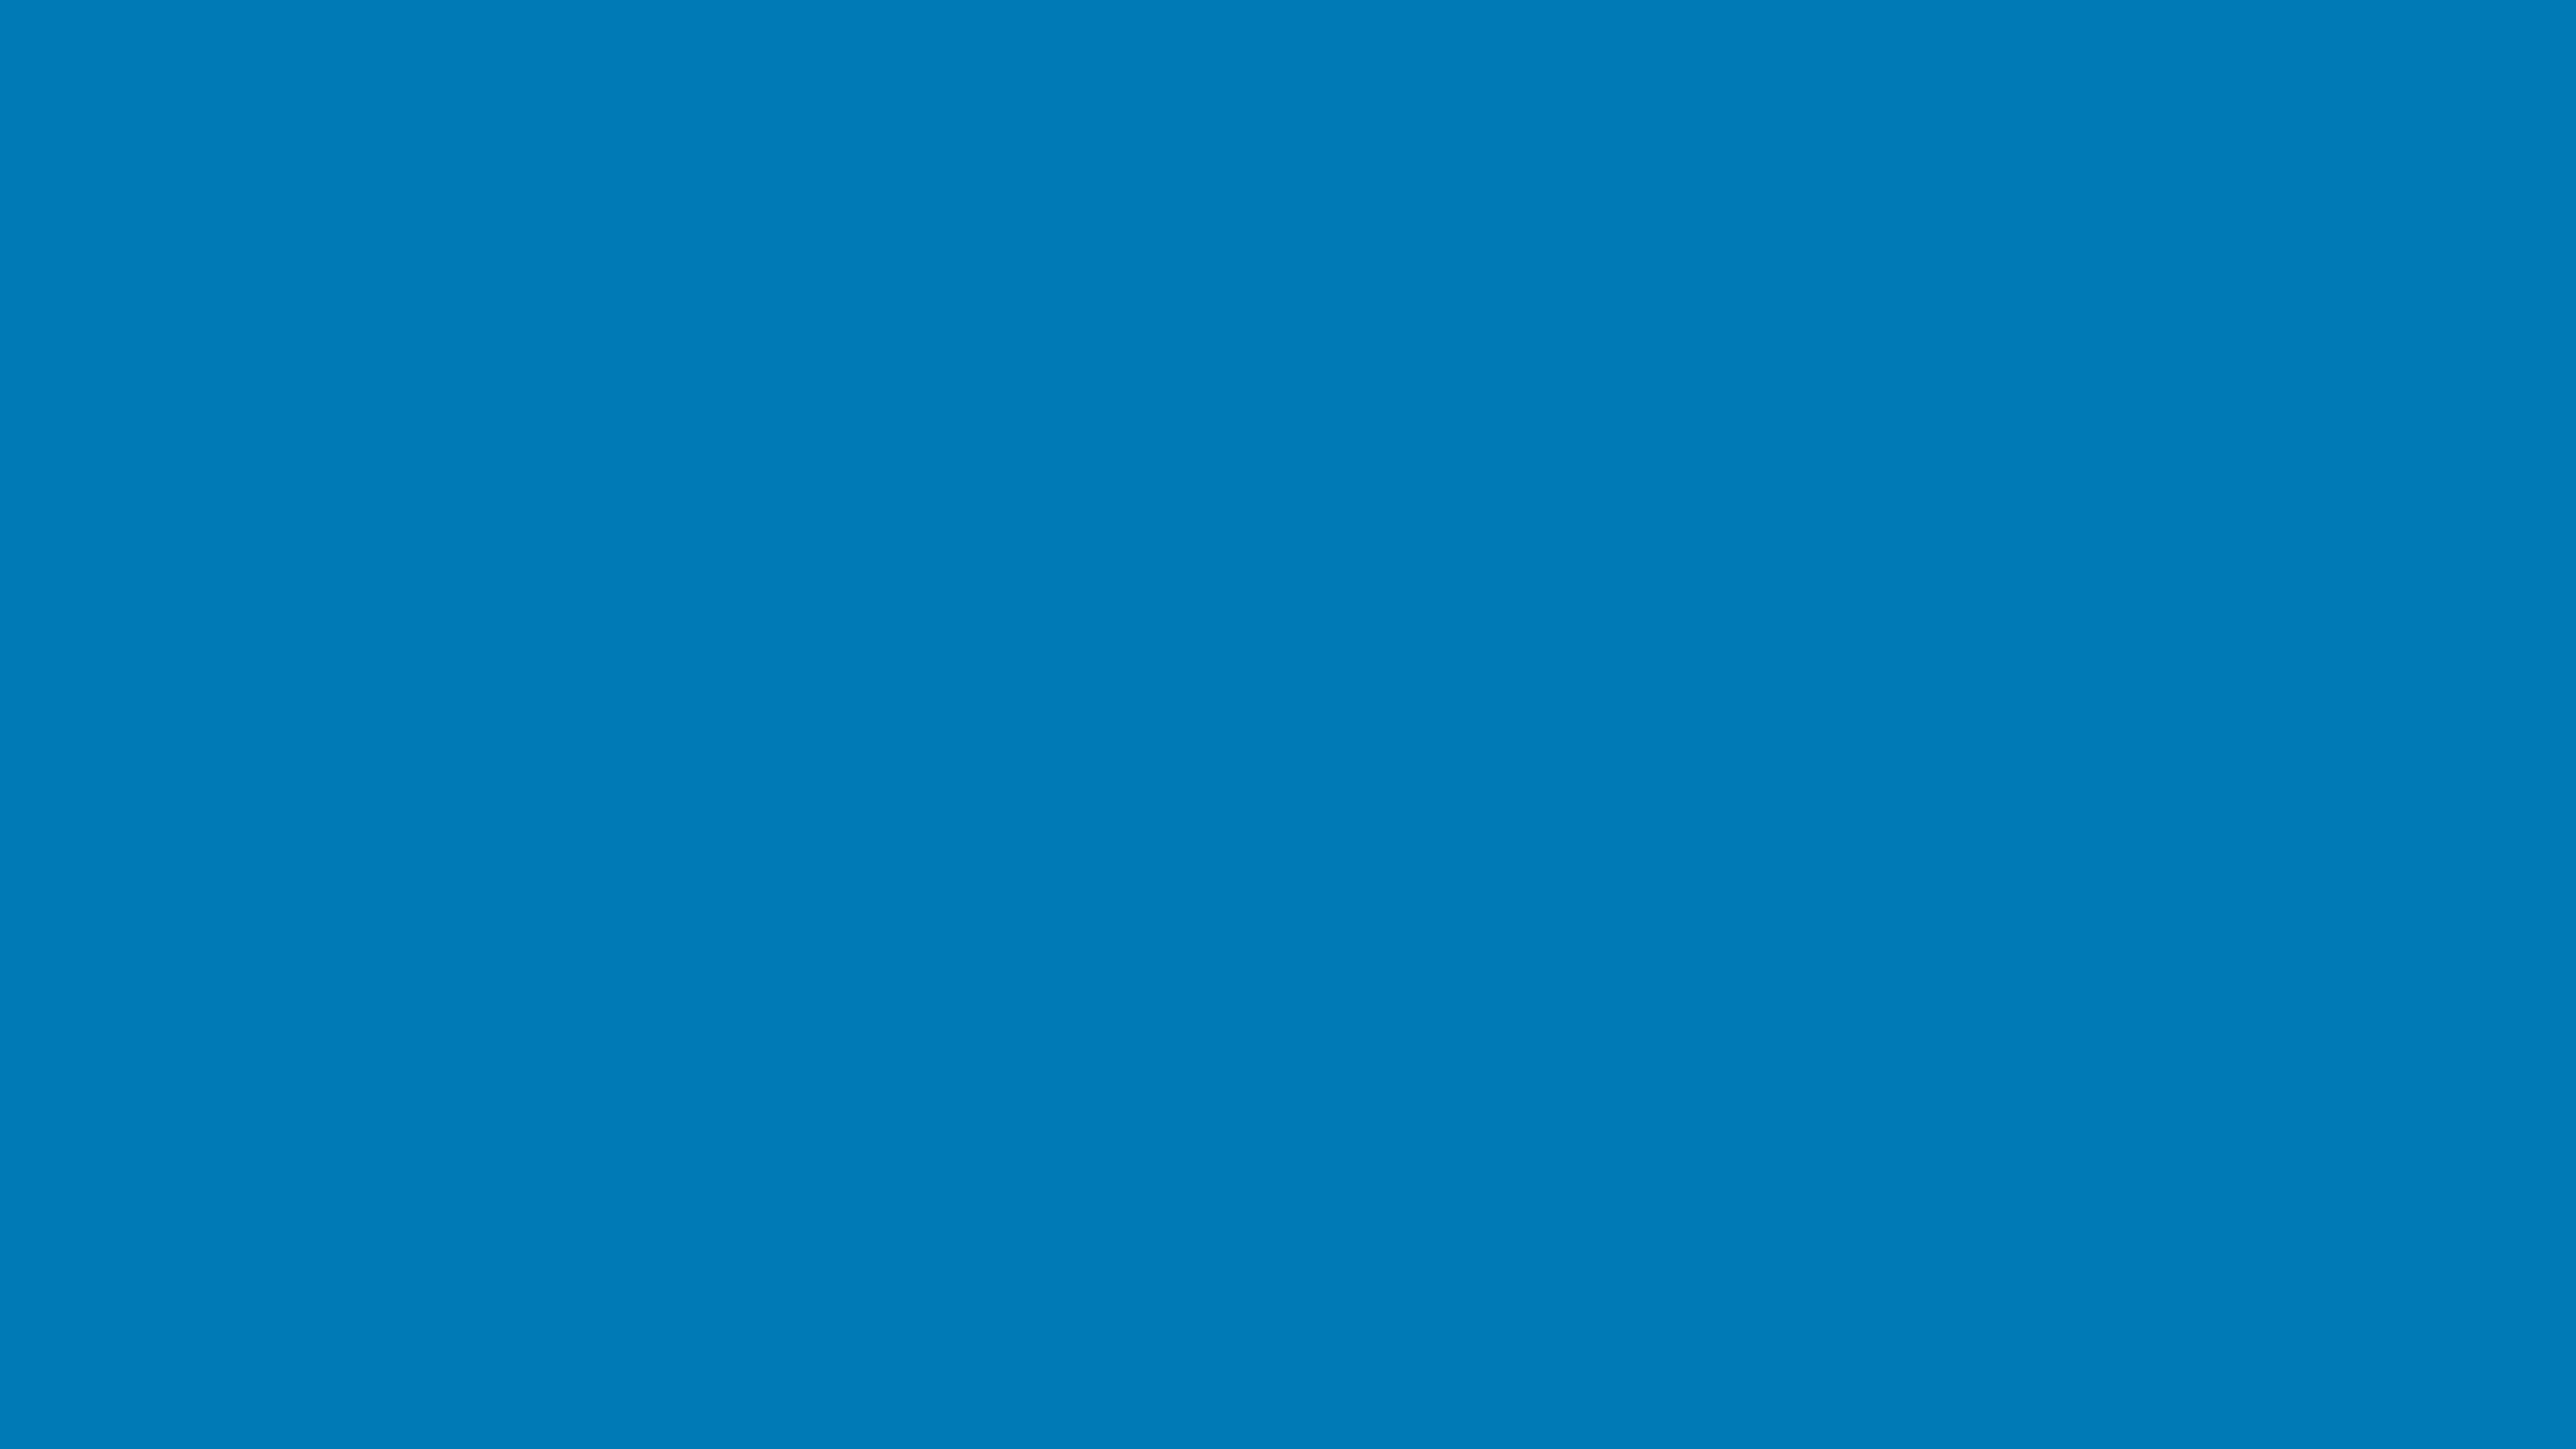 4096x2304 Star Command Blue Solid Color Background